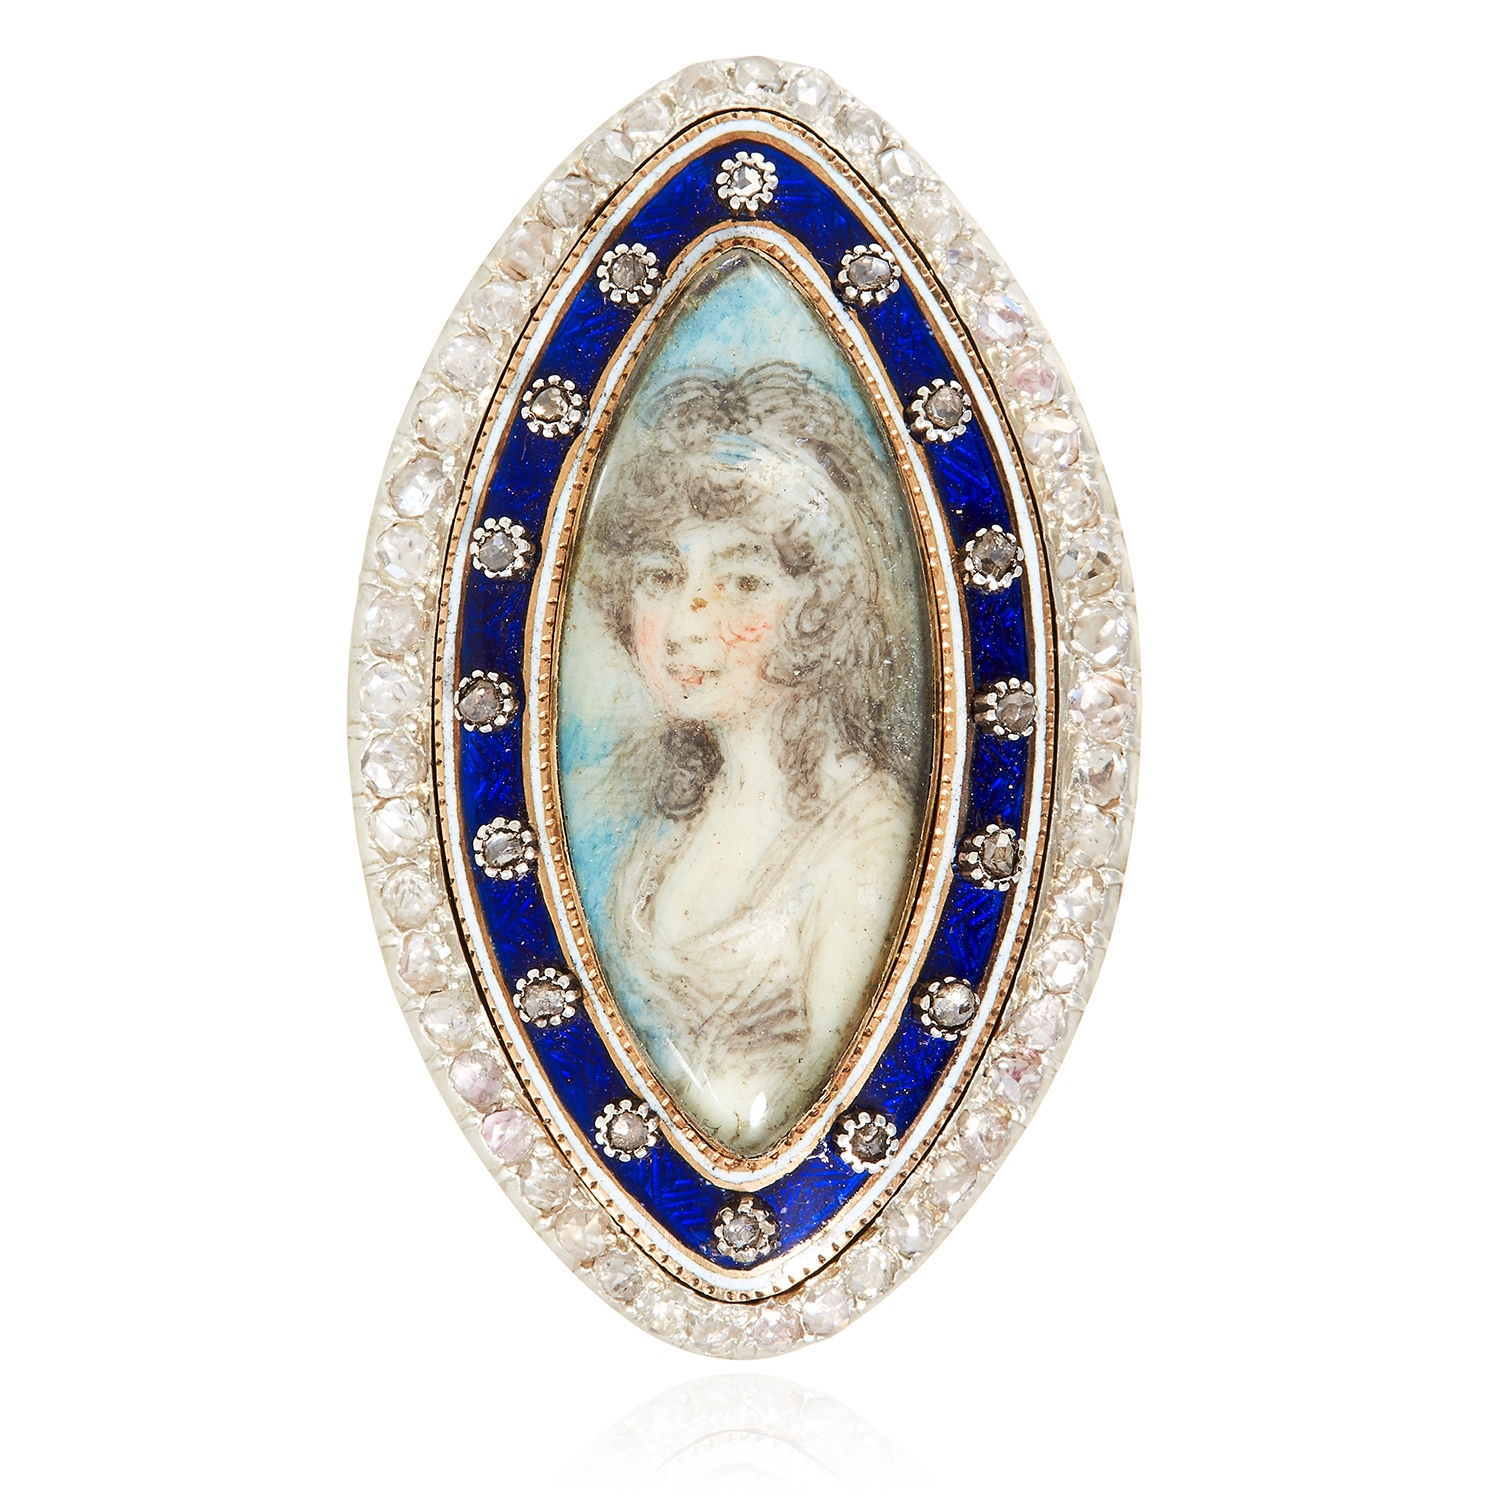 Los 50 - AN ANTIQUE DIAMOND, ENAMEL AND PAINTED MINIATURE MOURNING RING, EARLY 19TH CENTURY in high carat